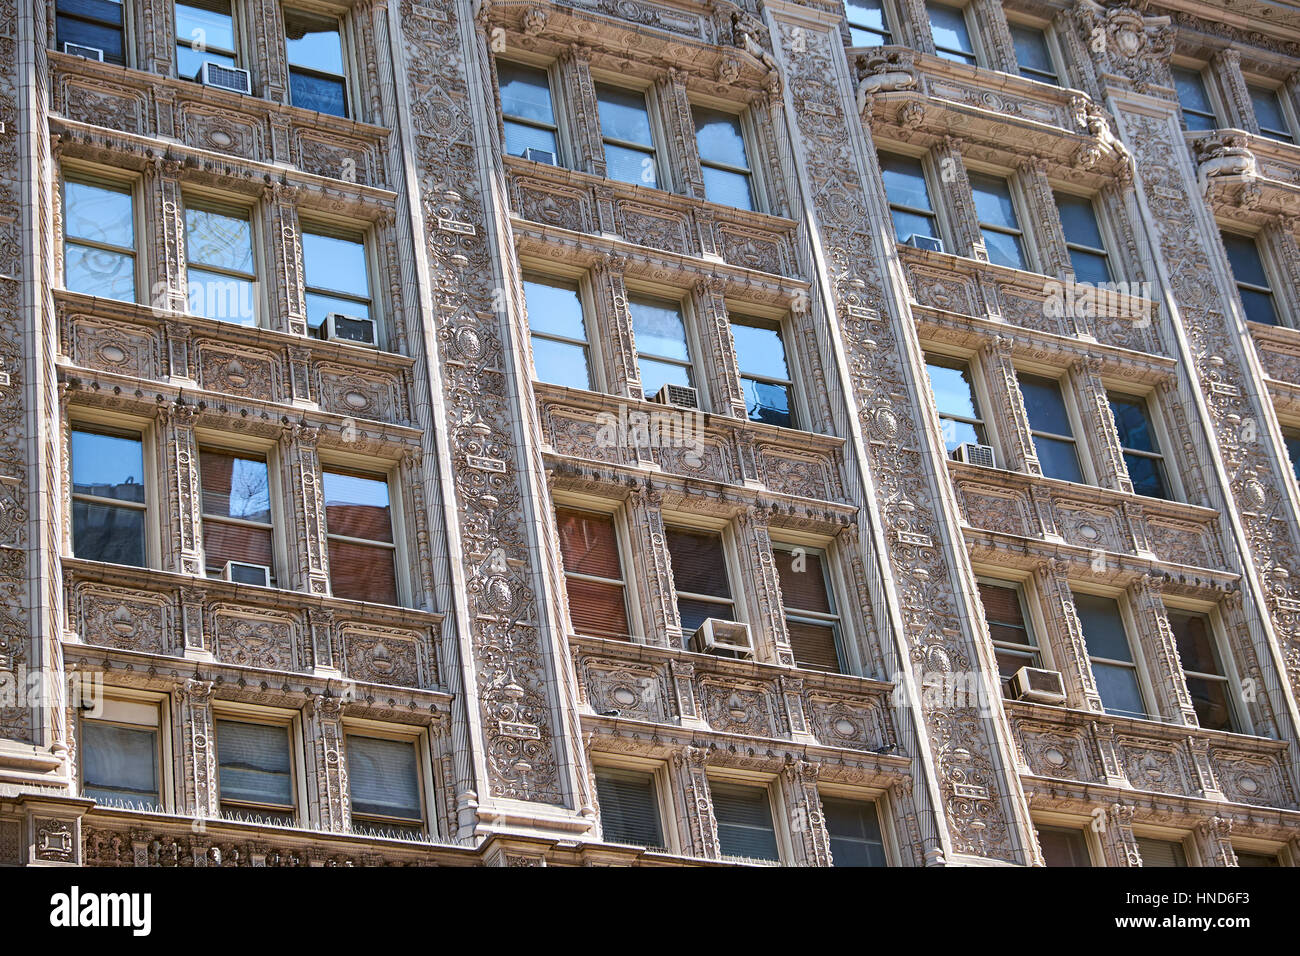 Terra cotta facade in french renaissance style with  elaborate decorations around windows and balconies of a  building - Stock Image